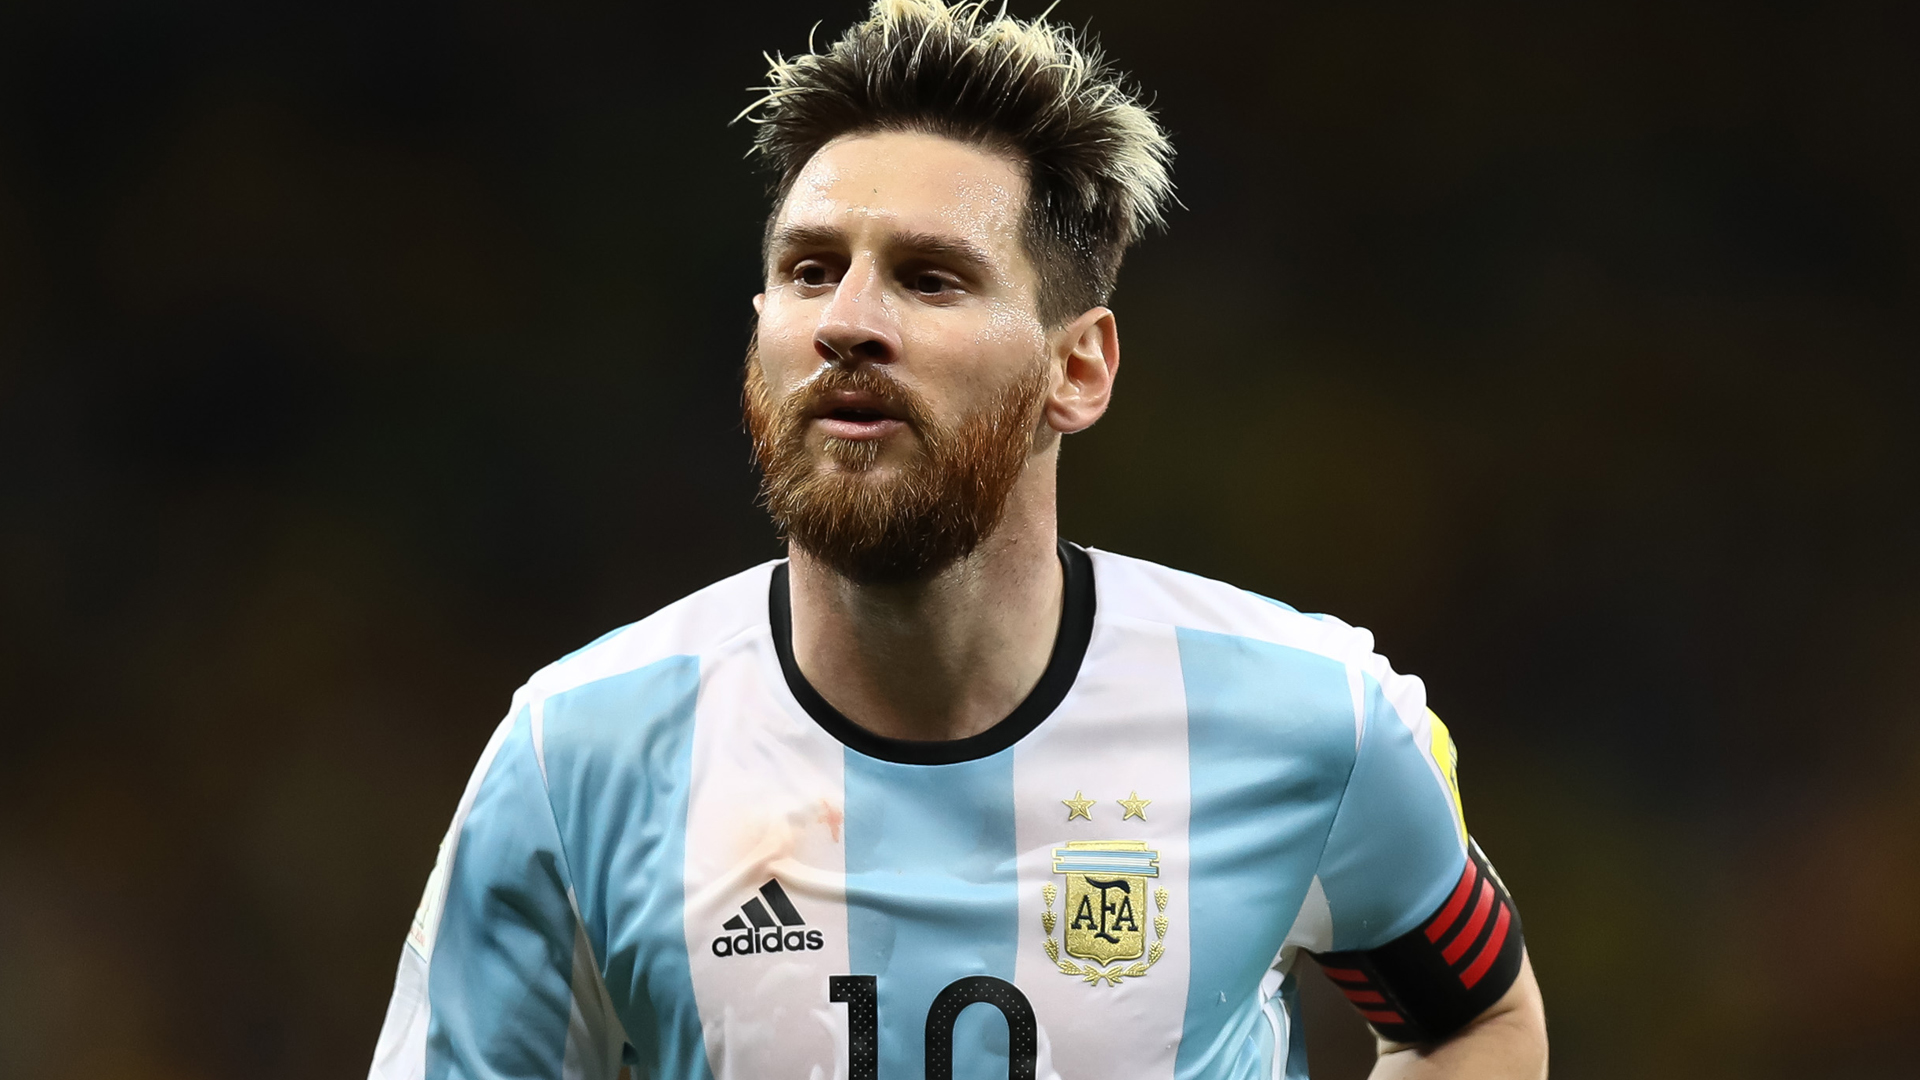 Sampaoli keen to build around 'very excited' Messi